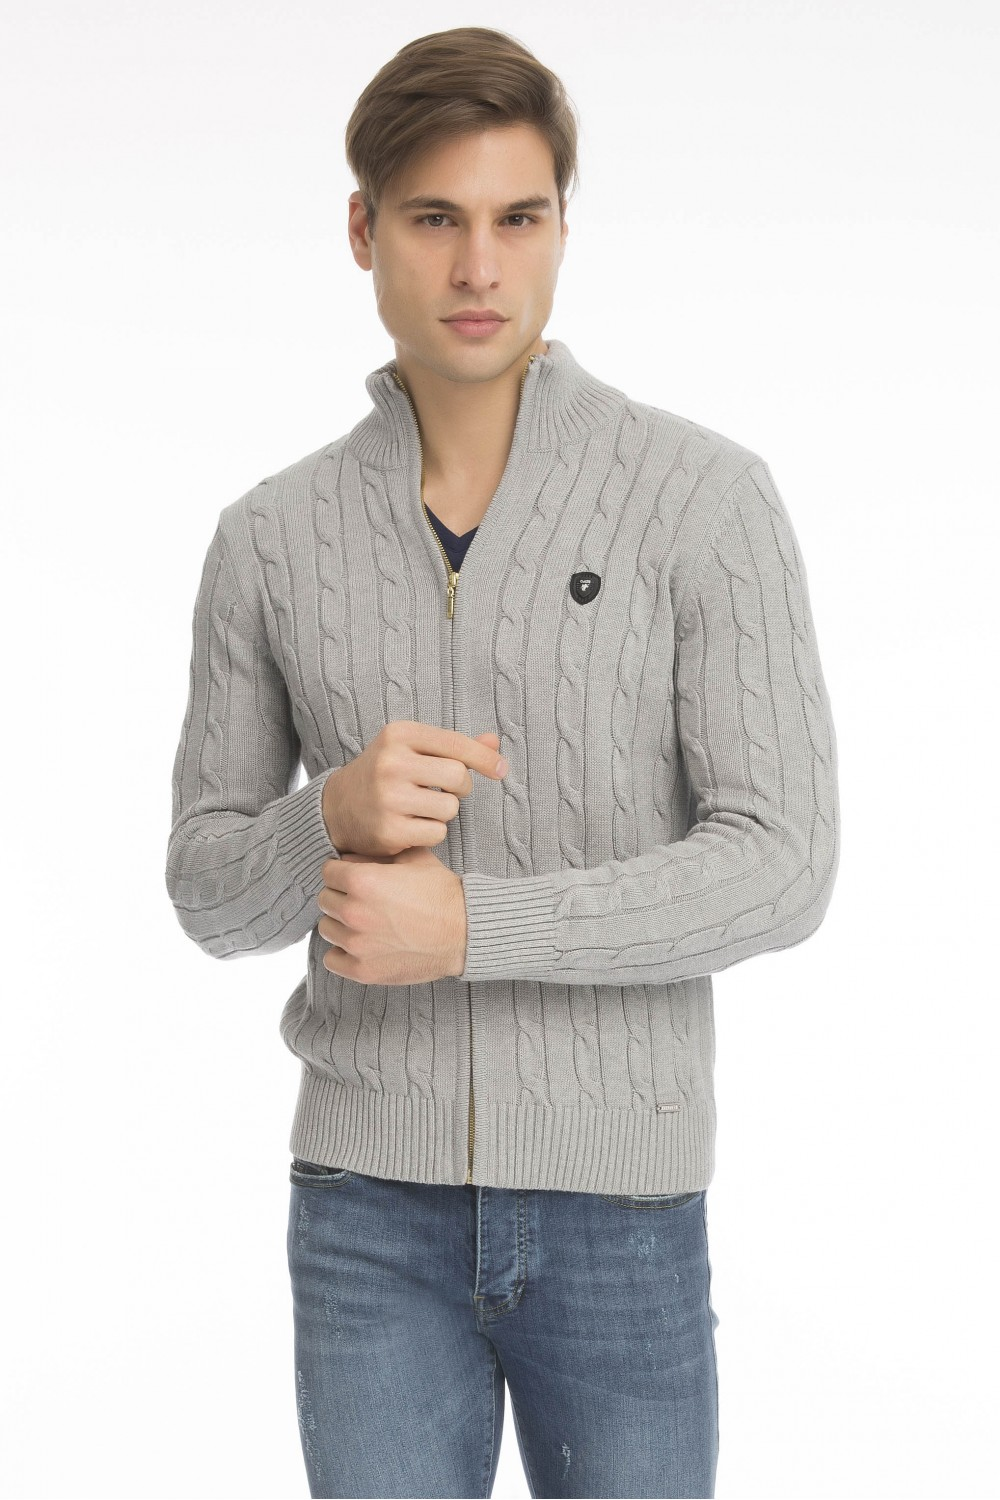 Men's Cardigan Zip Knit Collar Heather Gray